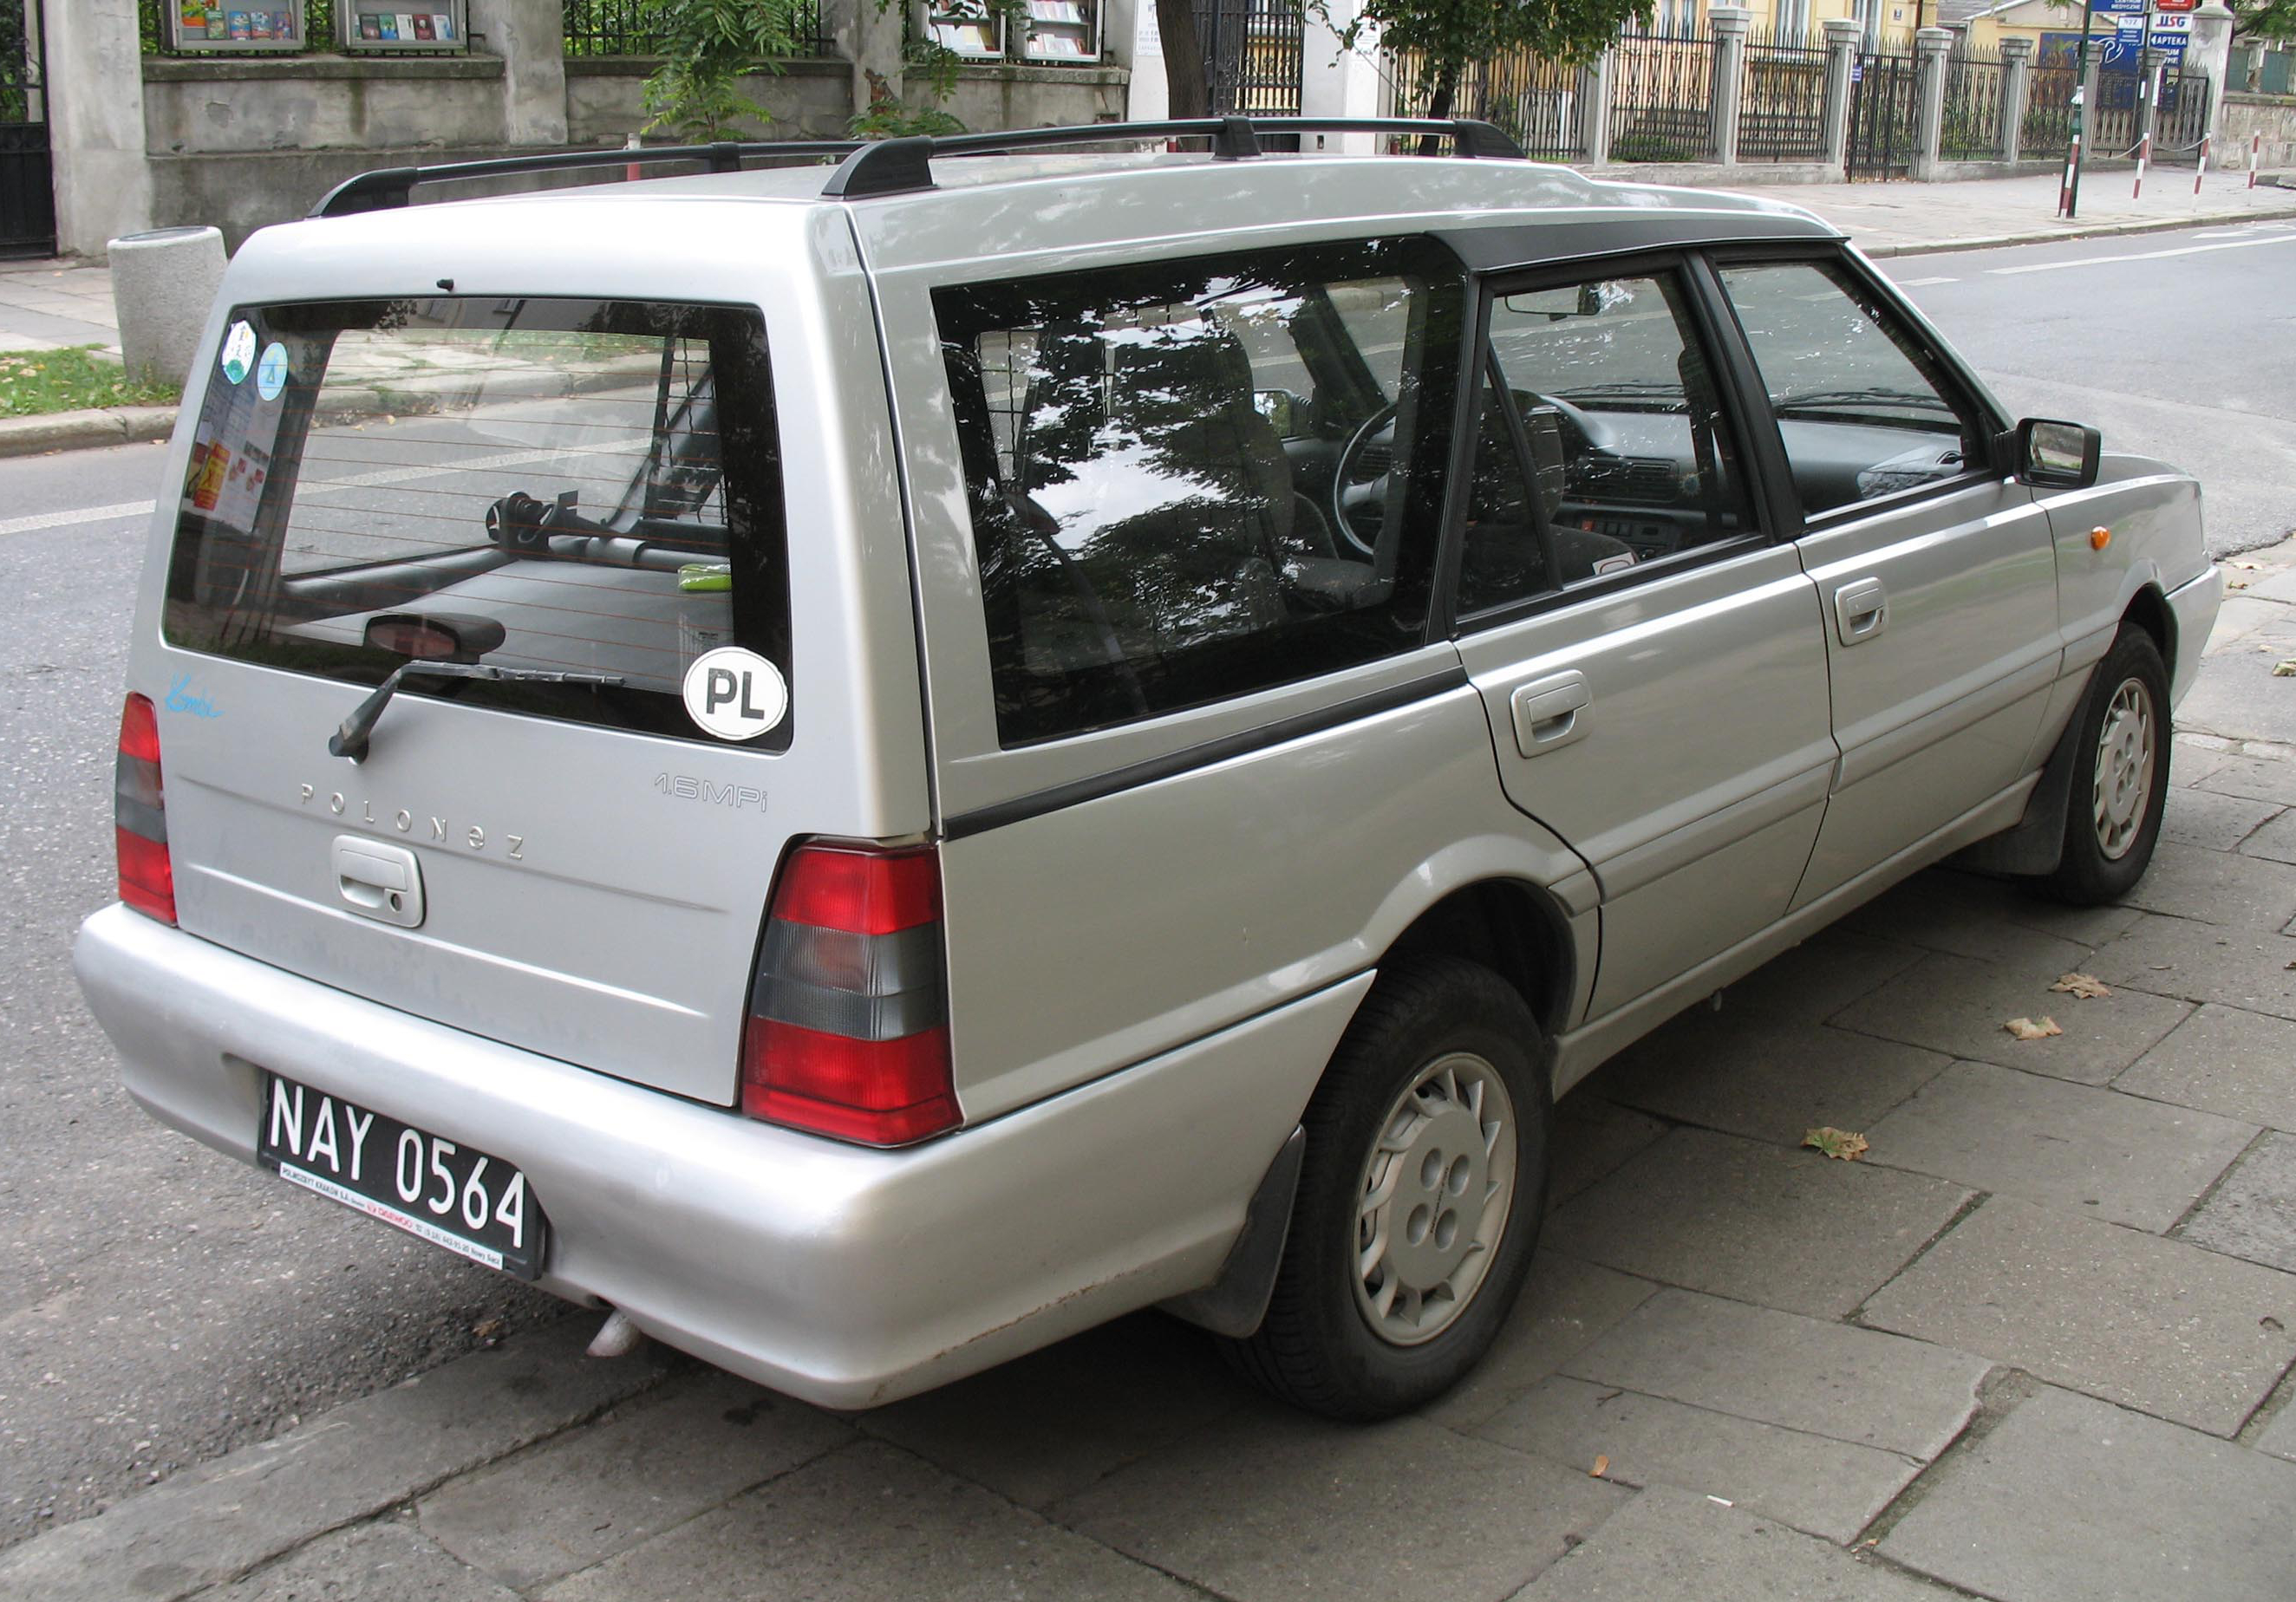 https://upload.wikimedia.org/wikipedia/commons/2/27/Polonez_Kombi_1,6_MPi_back.jpg